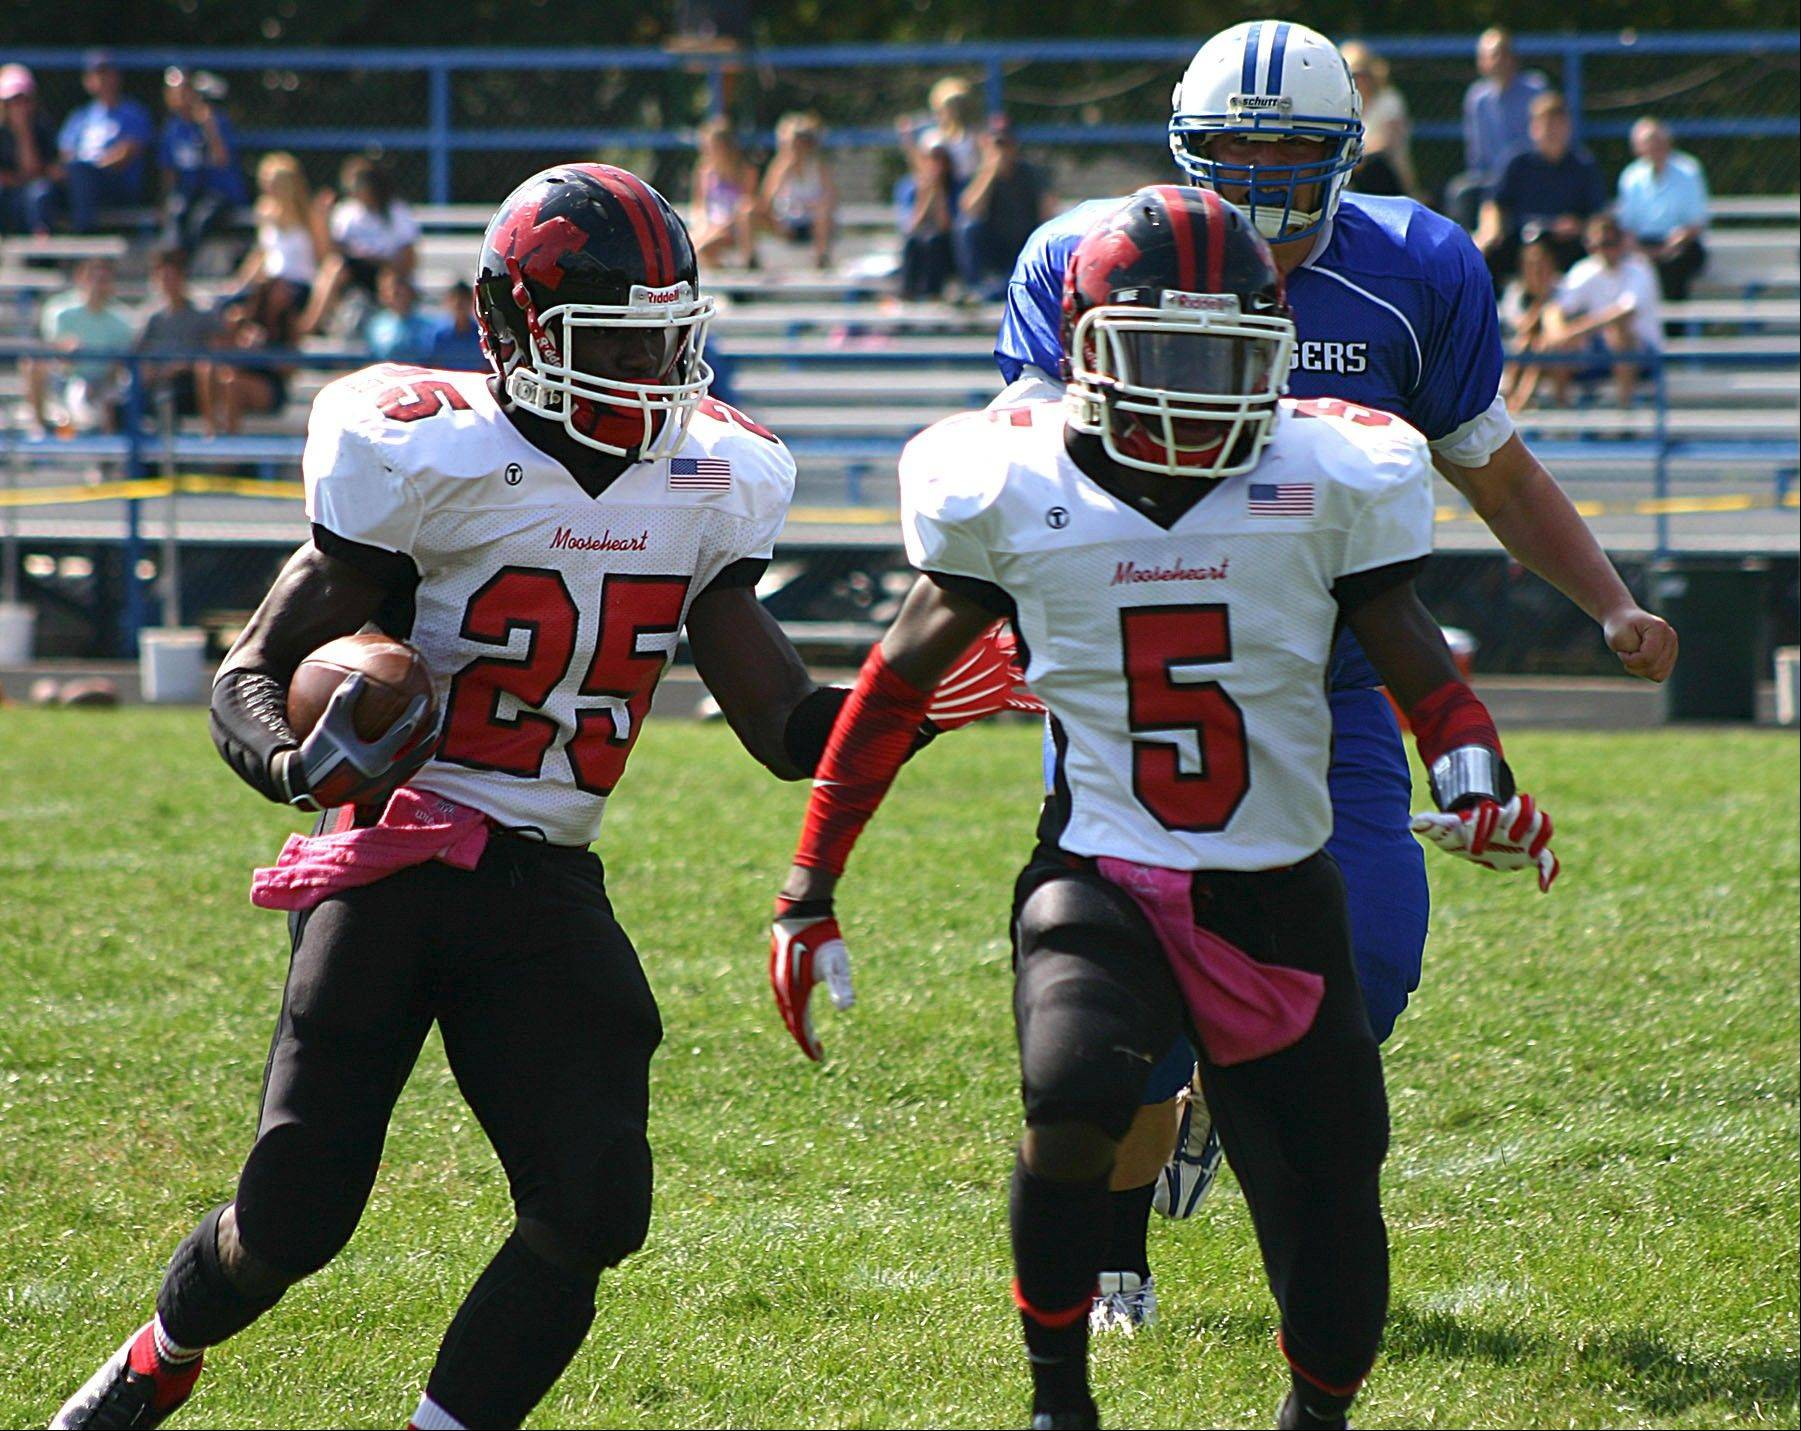 Mooseheart's Joe Feemorlu (25) picks up yardage against Christian Liberty Academy on Saturday in Arlington Heights.